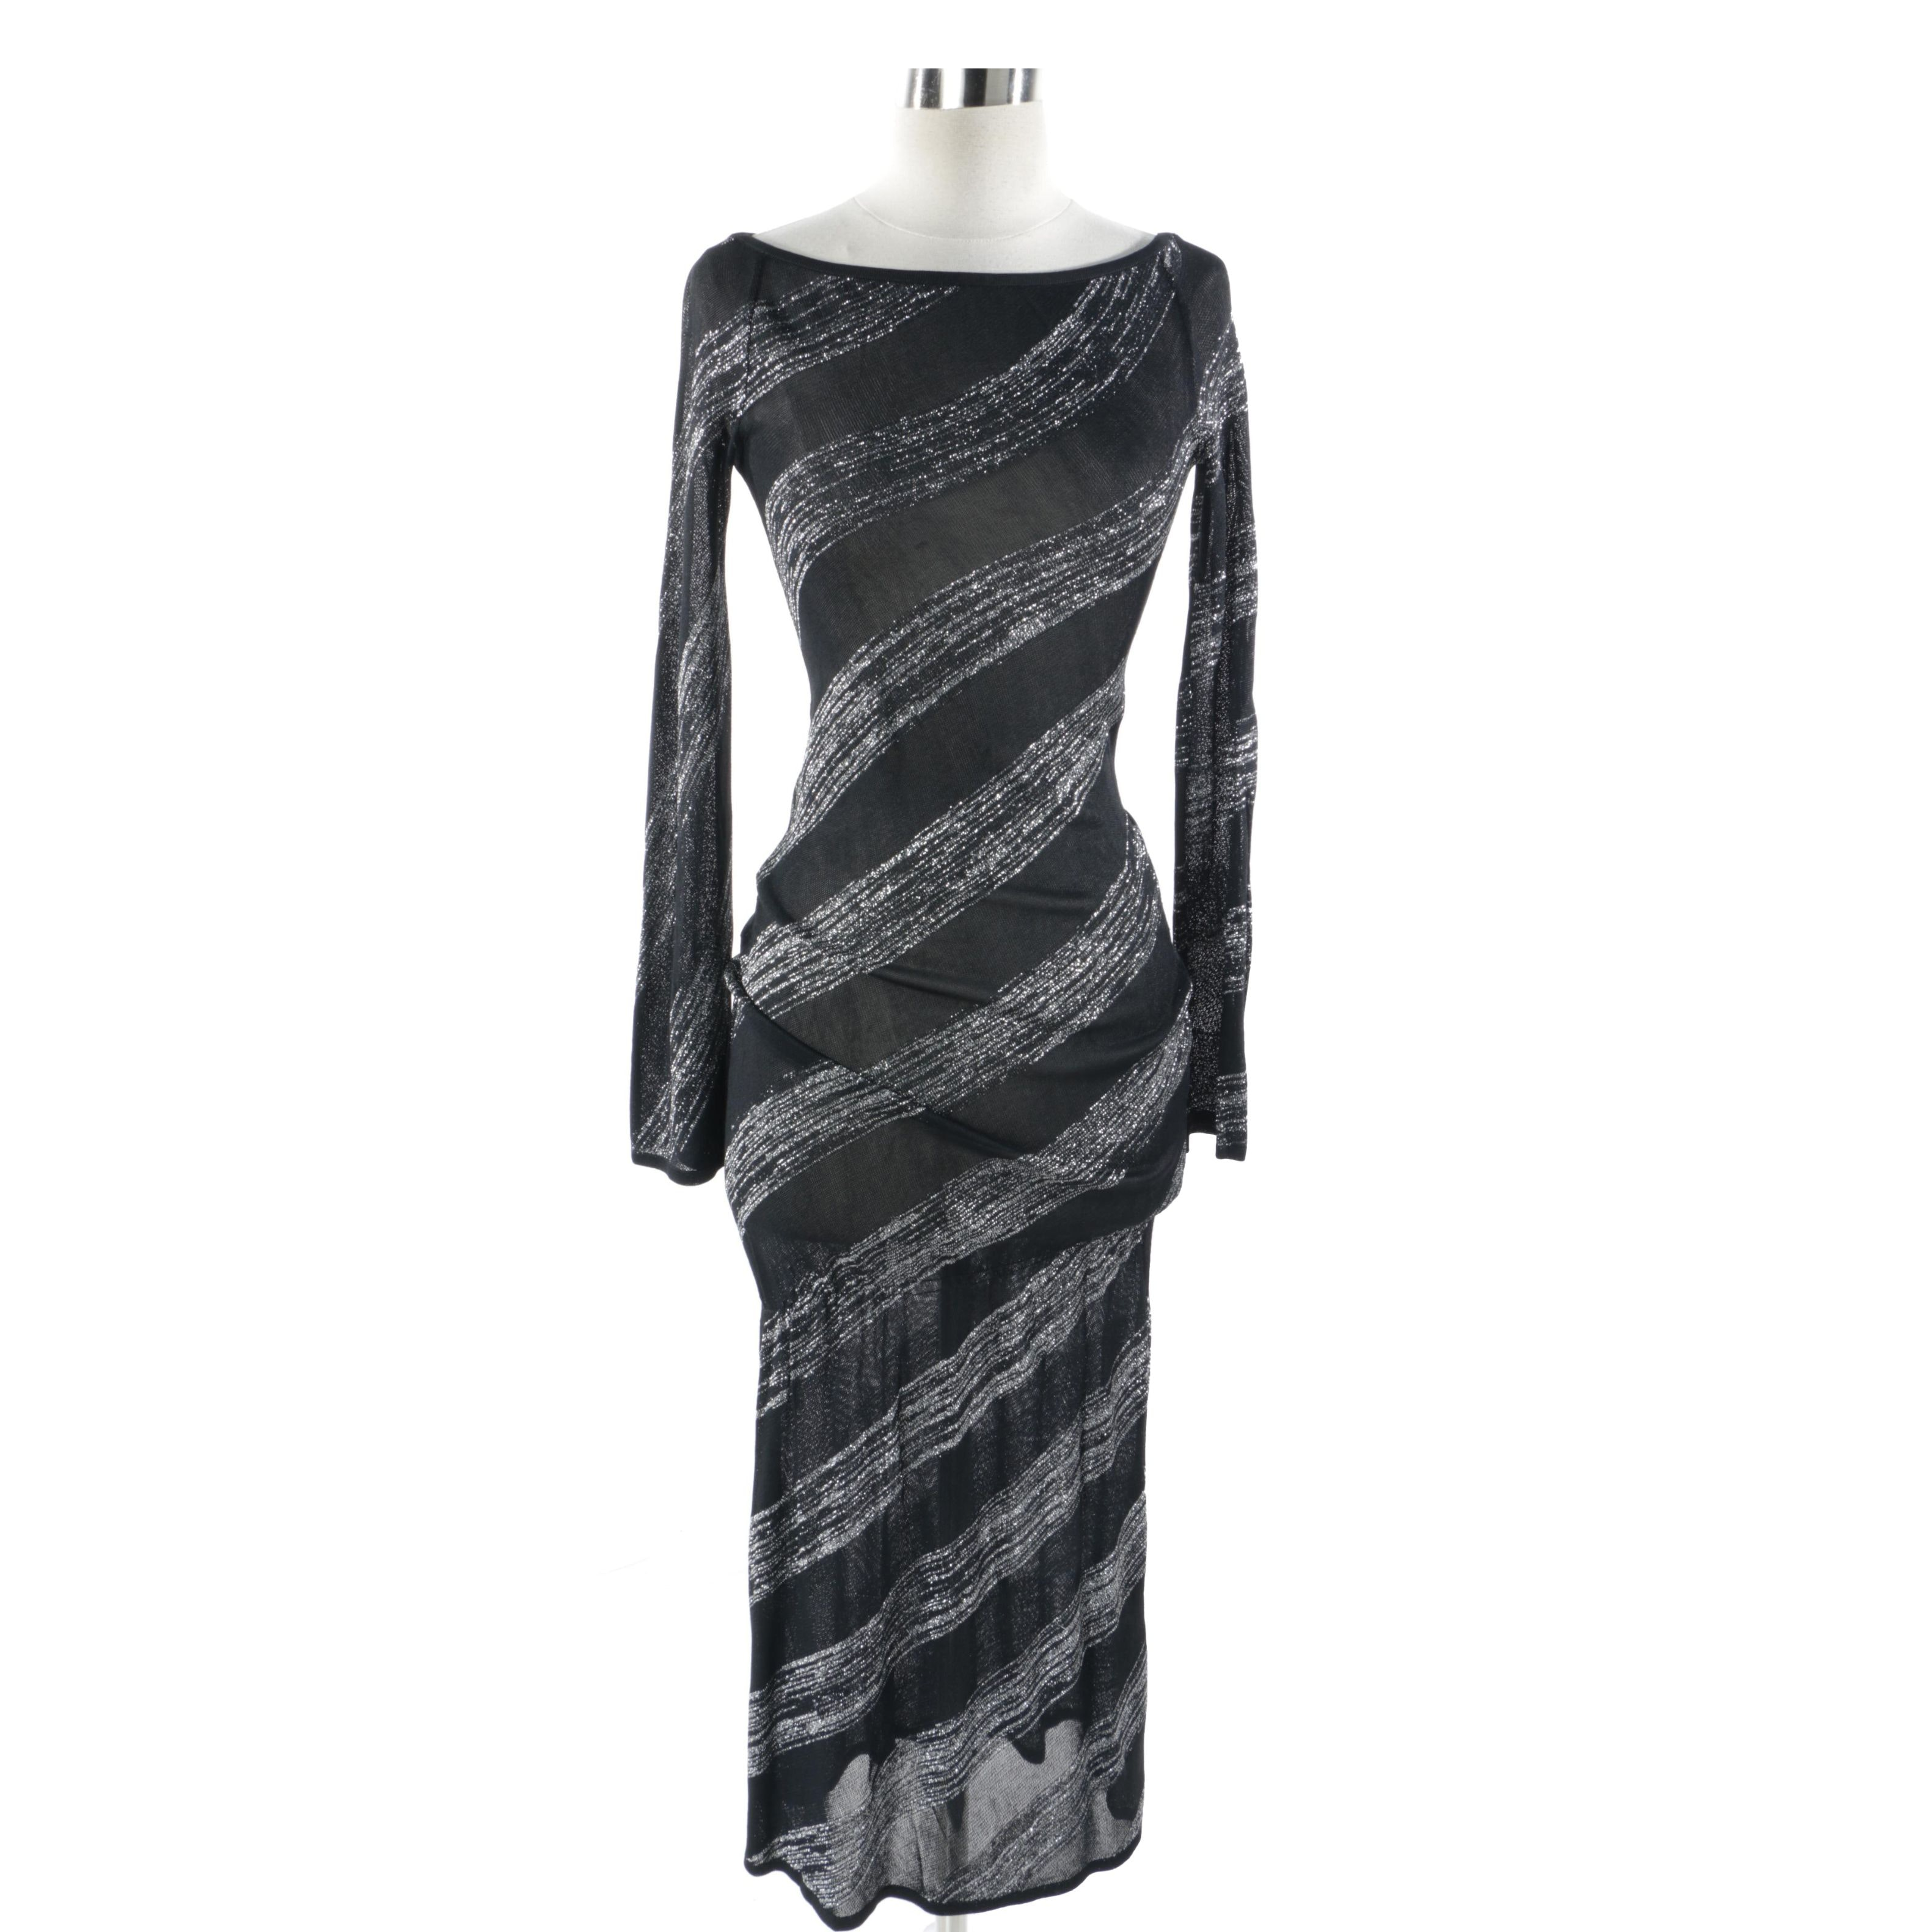 Alexander McQueen Black and Silver Knit Dress